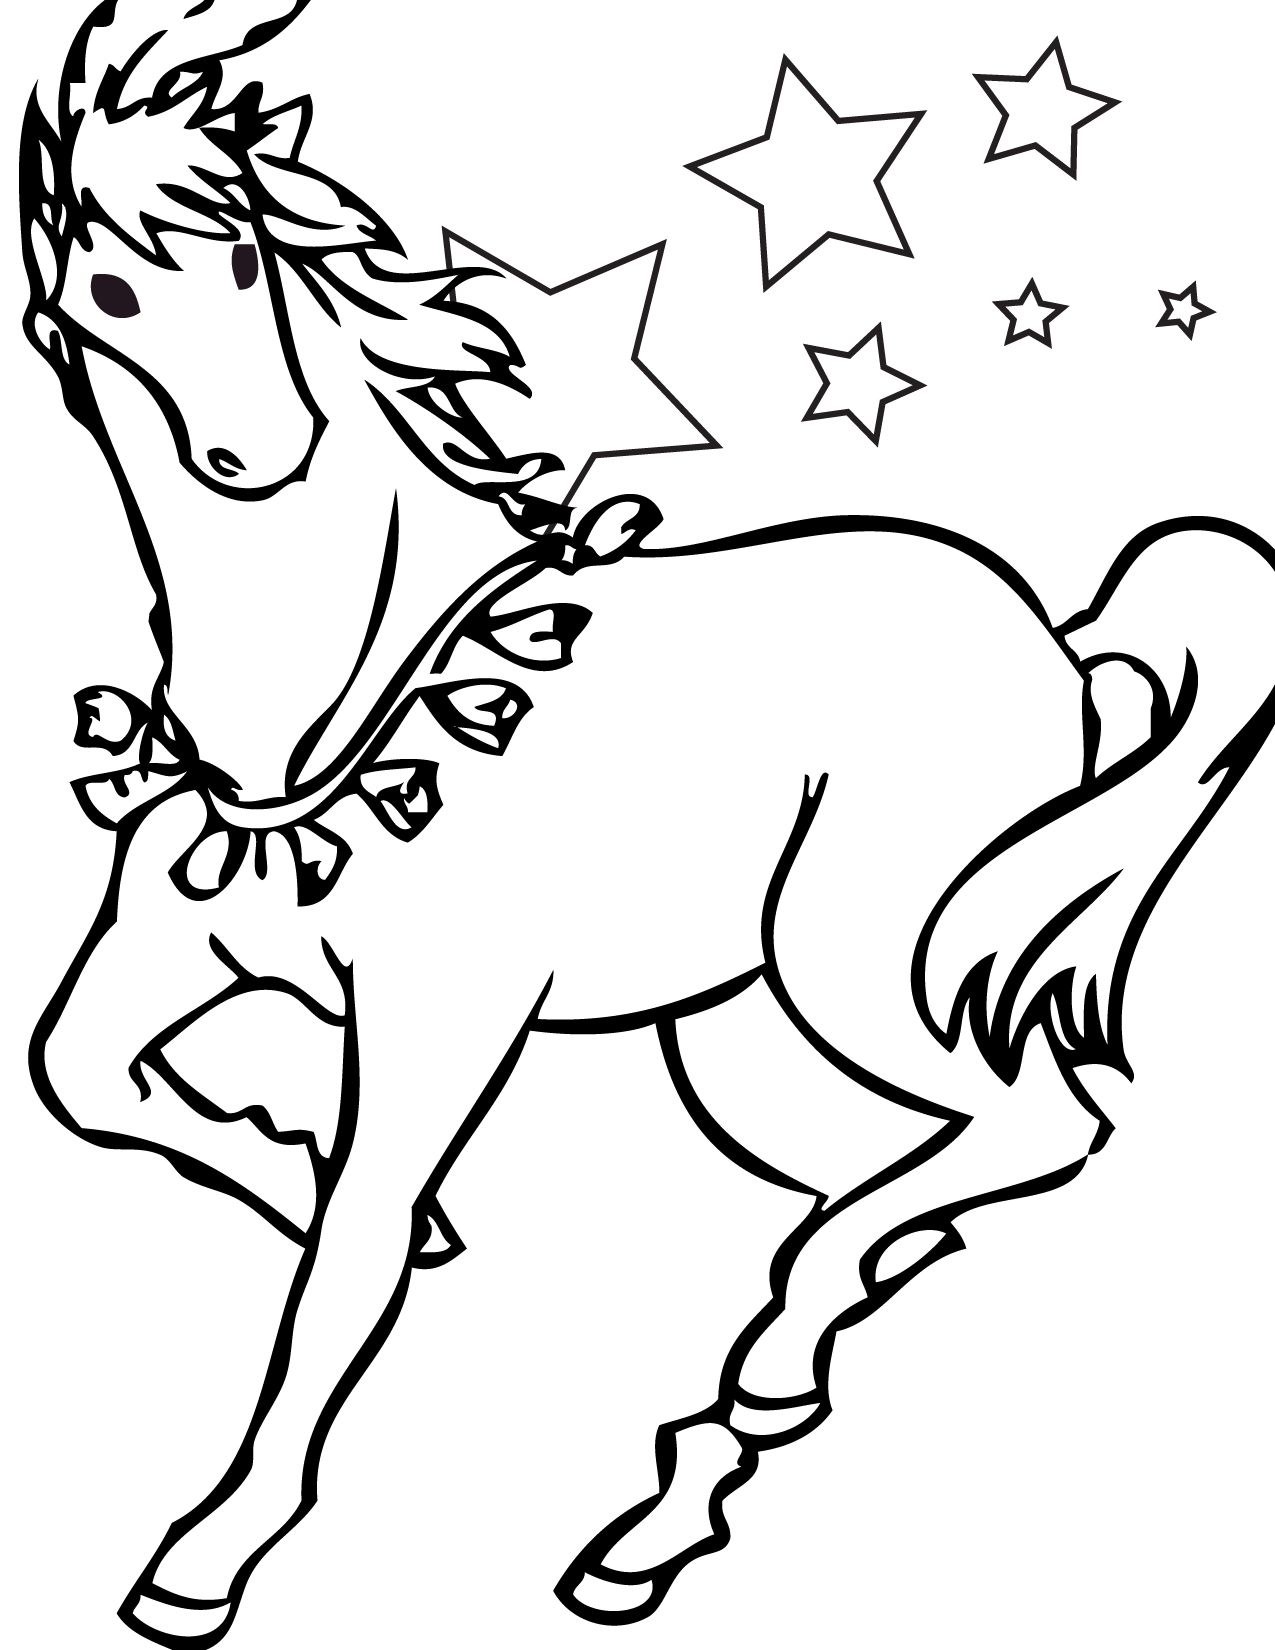 free printable horse coloring pages for kids | little ones